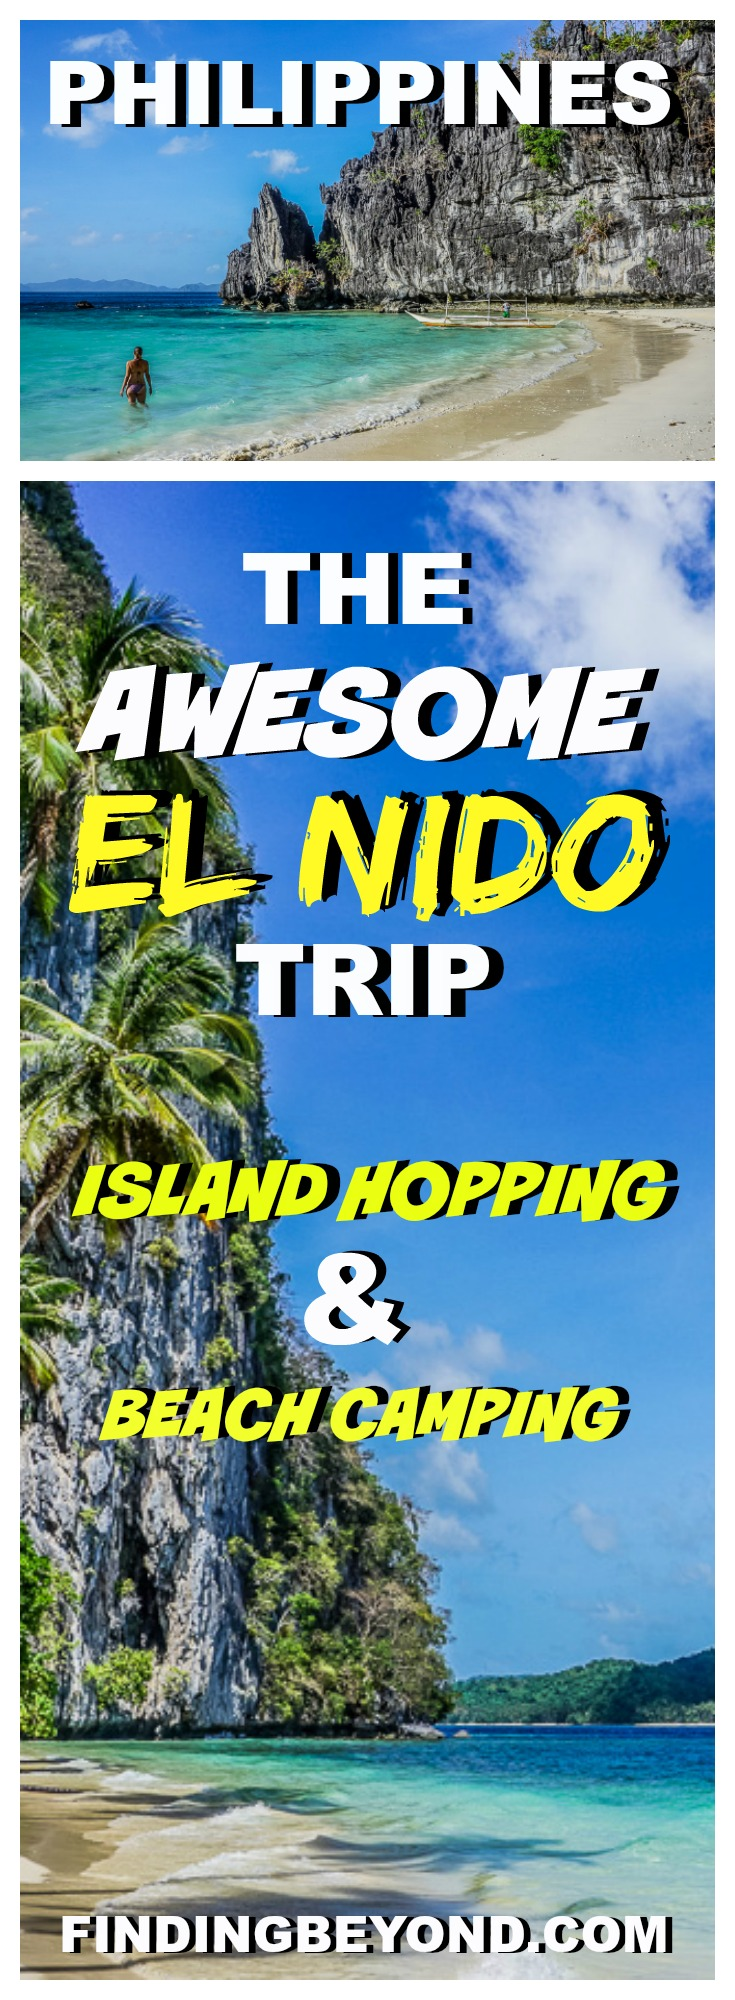 Check out our awesome El Nido trip itinerary. Included is information on El Nido island hopping, El Nido camping and how to get there.